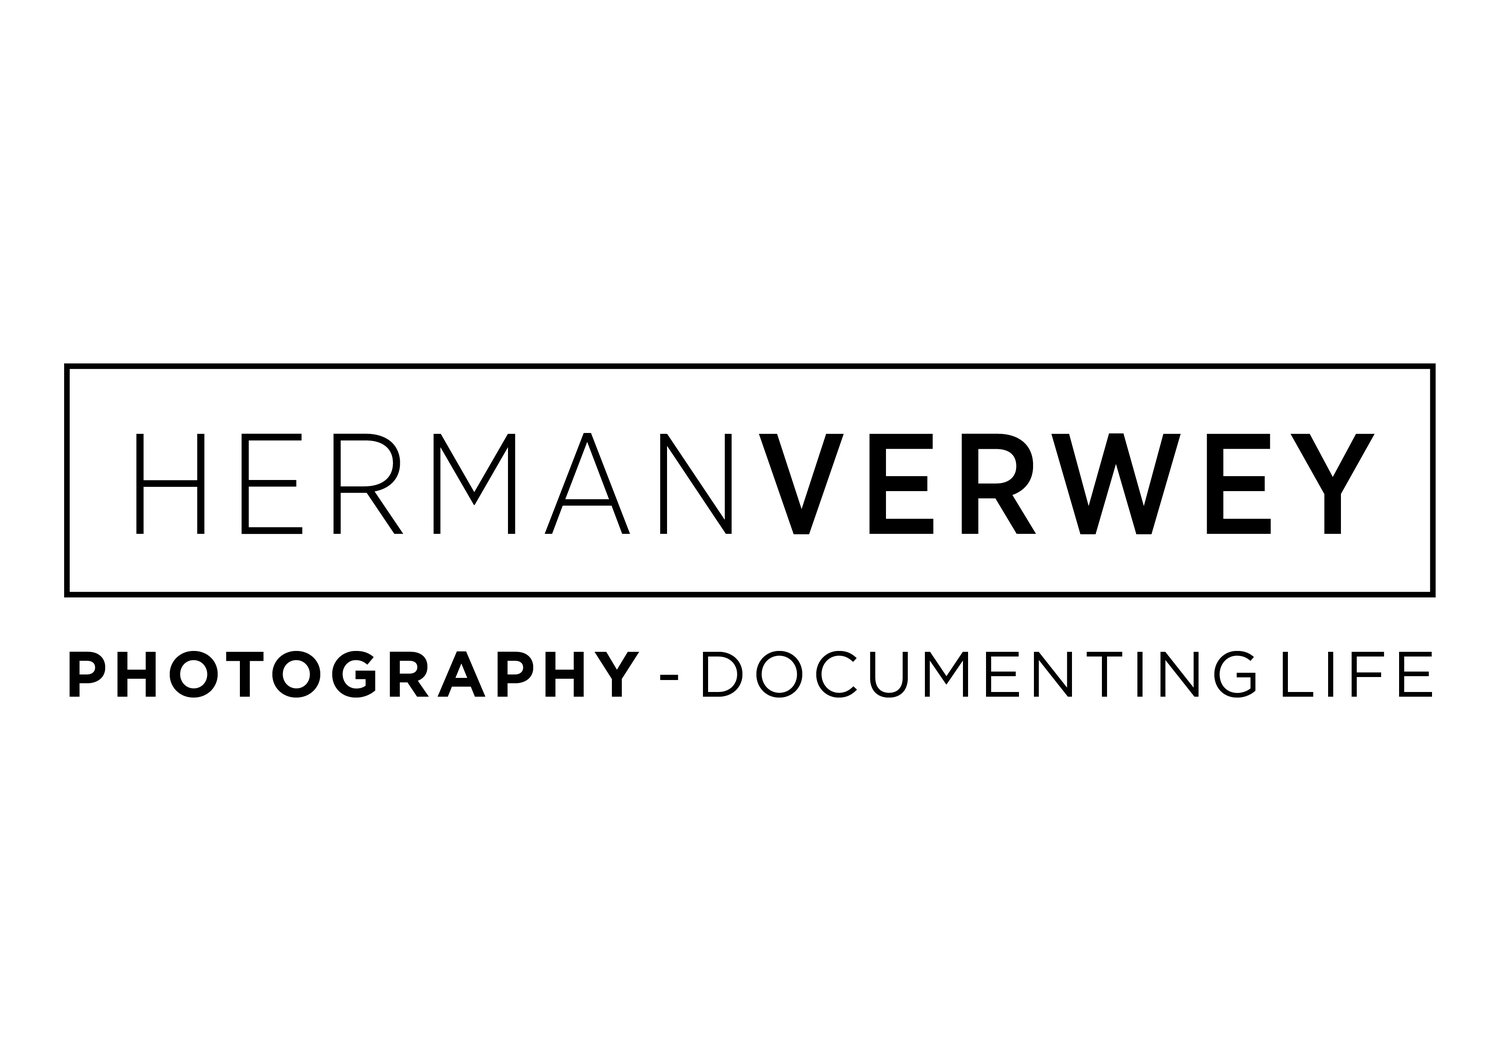 Herman Verwey Photography